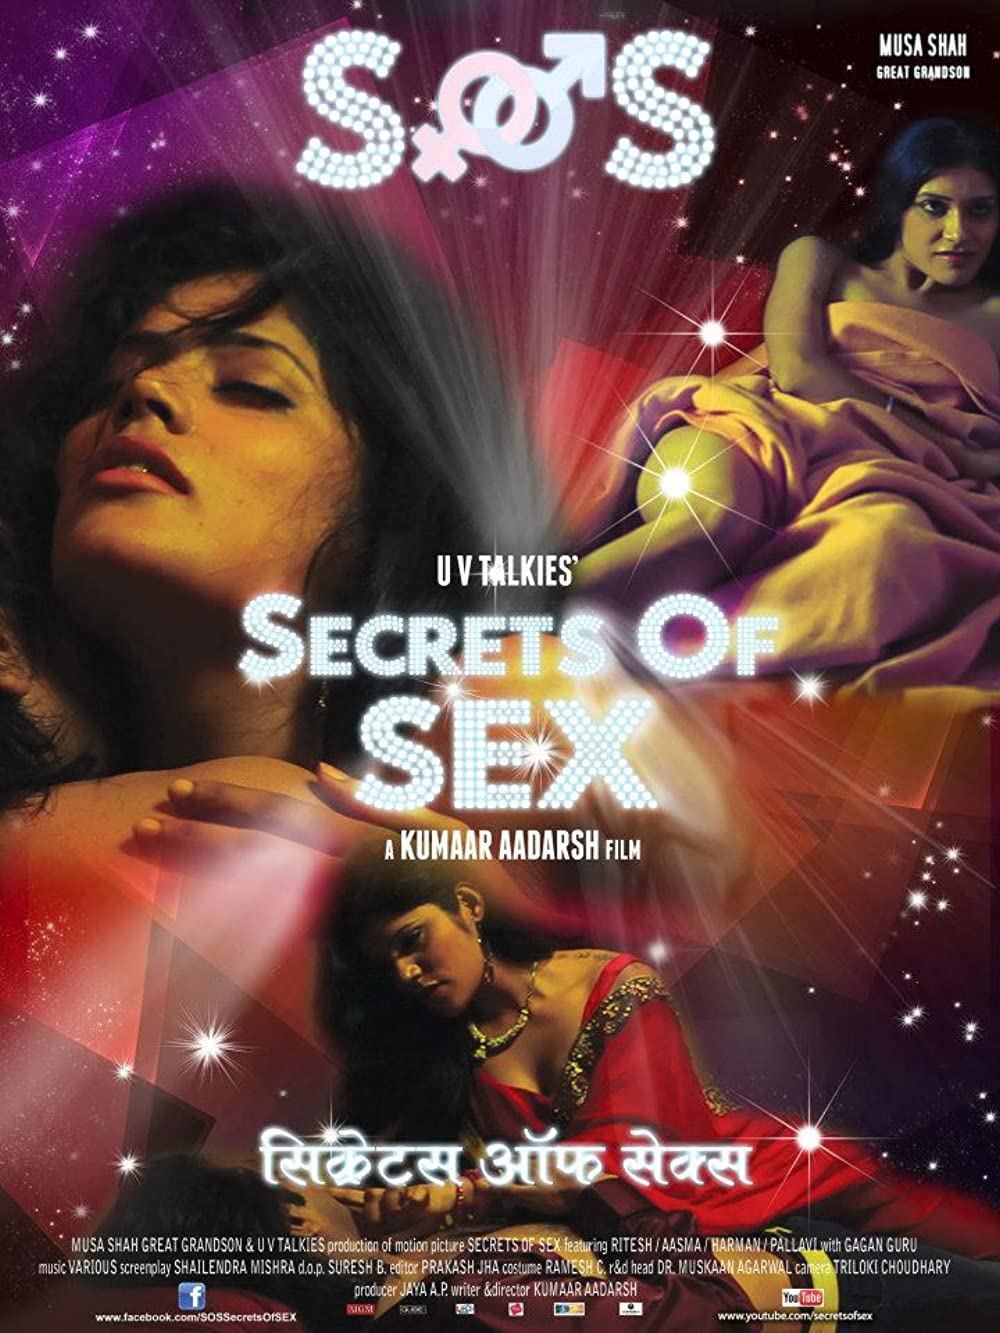 18+ SOS Secrets of Sex 2013 Hindi 1080p HDRip ESubs 1.6GB